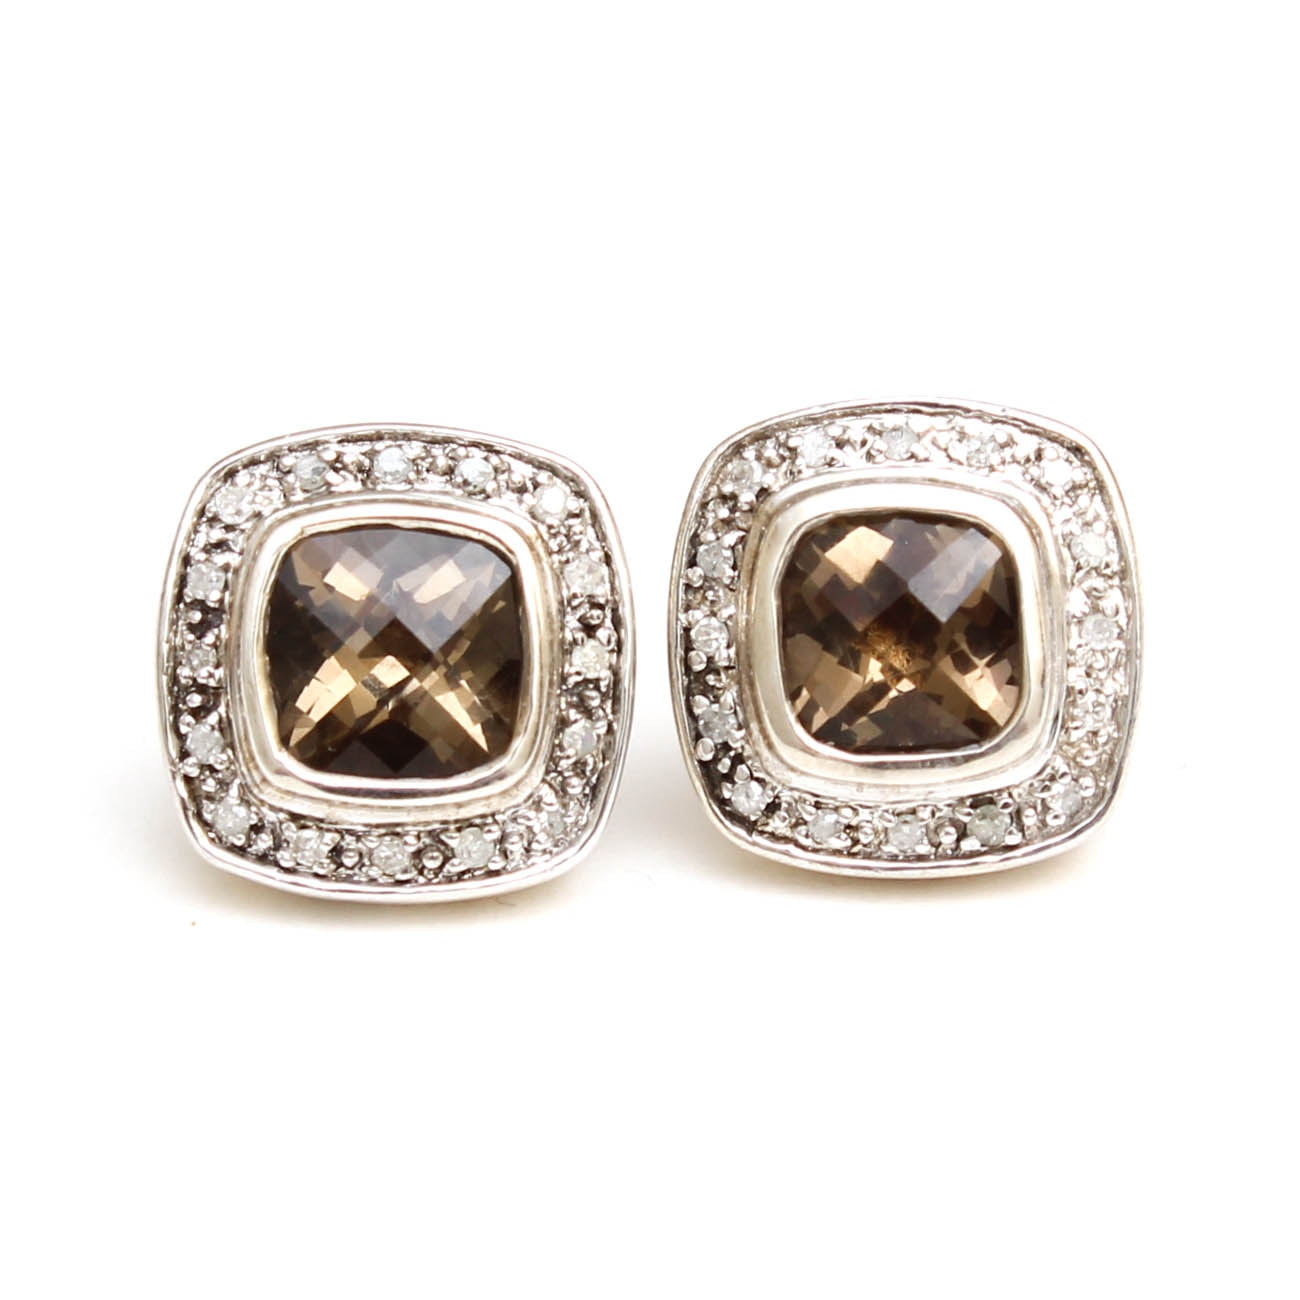 14K White Gold and Sterling Smoky Quartz and Diamond Stud Earrings